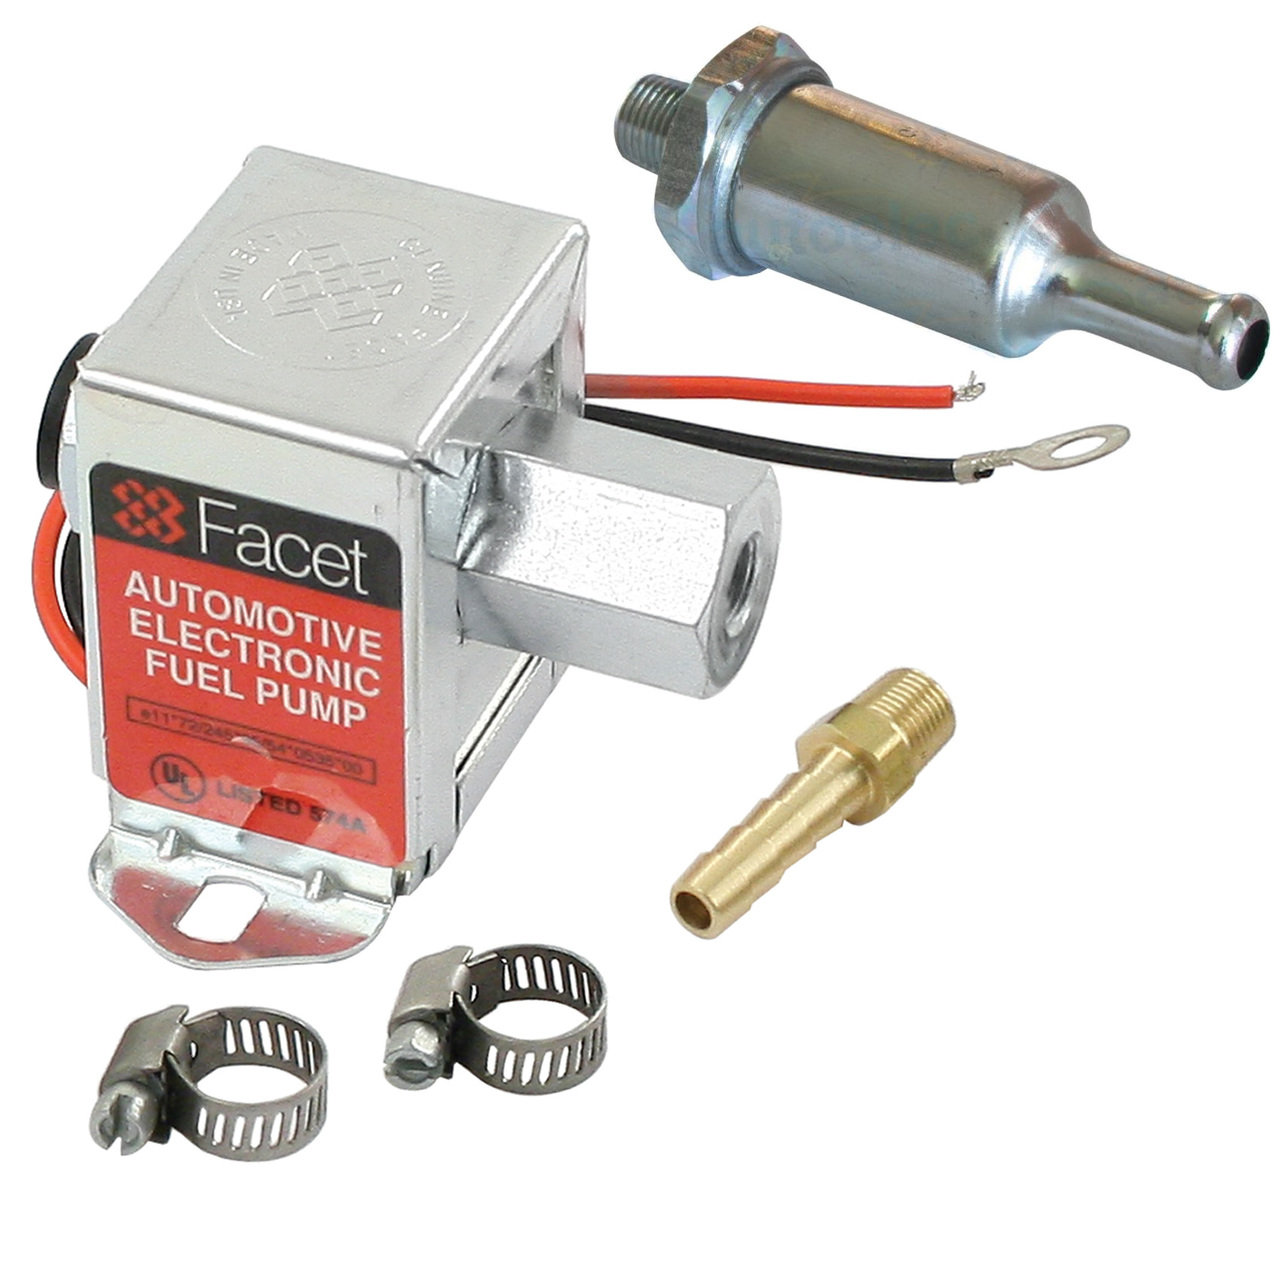 hight resolution of facet fep42sv cube electric fuel pump 1 5 4 psi includes clamps fittings filter